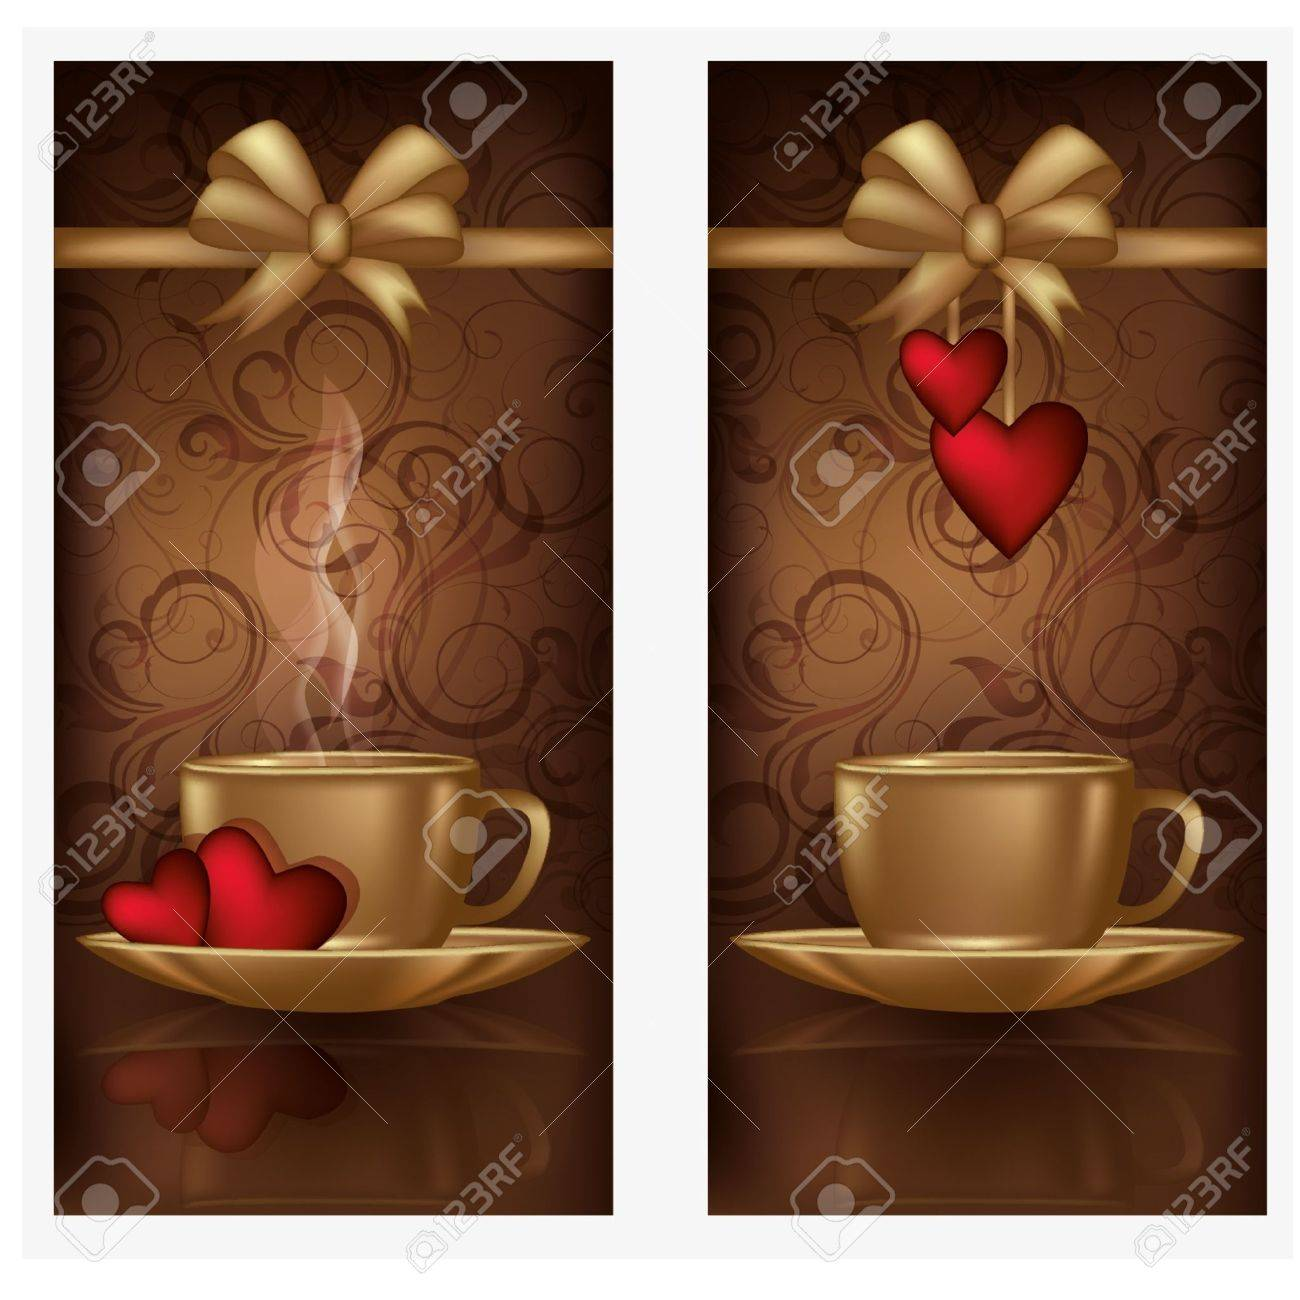 Two love banners with coffee, illustration Stock Vector - 17236416